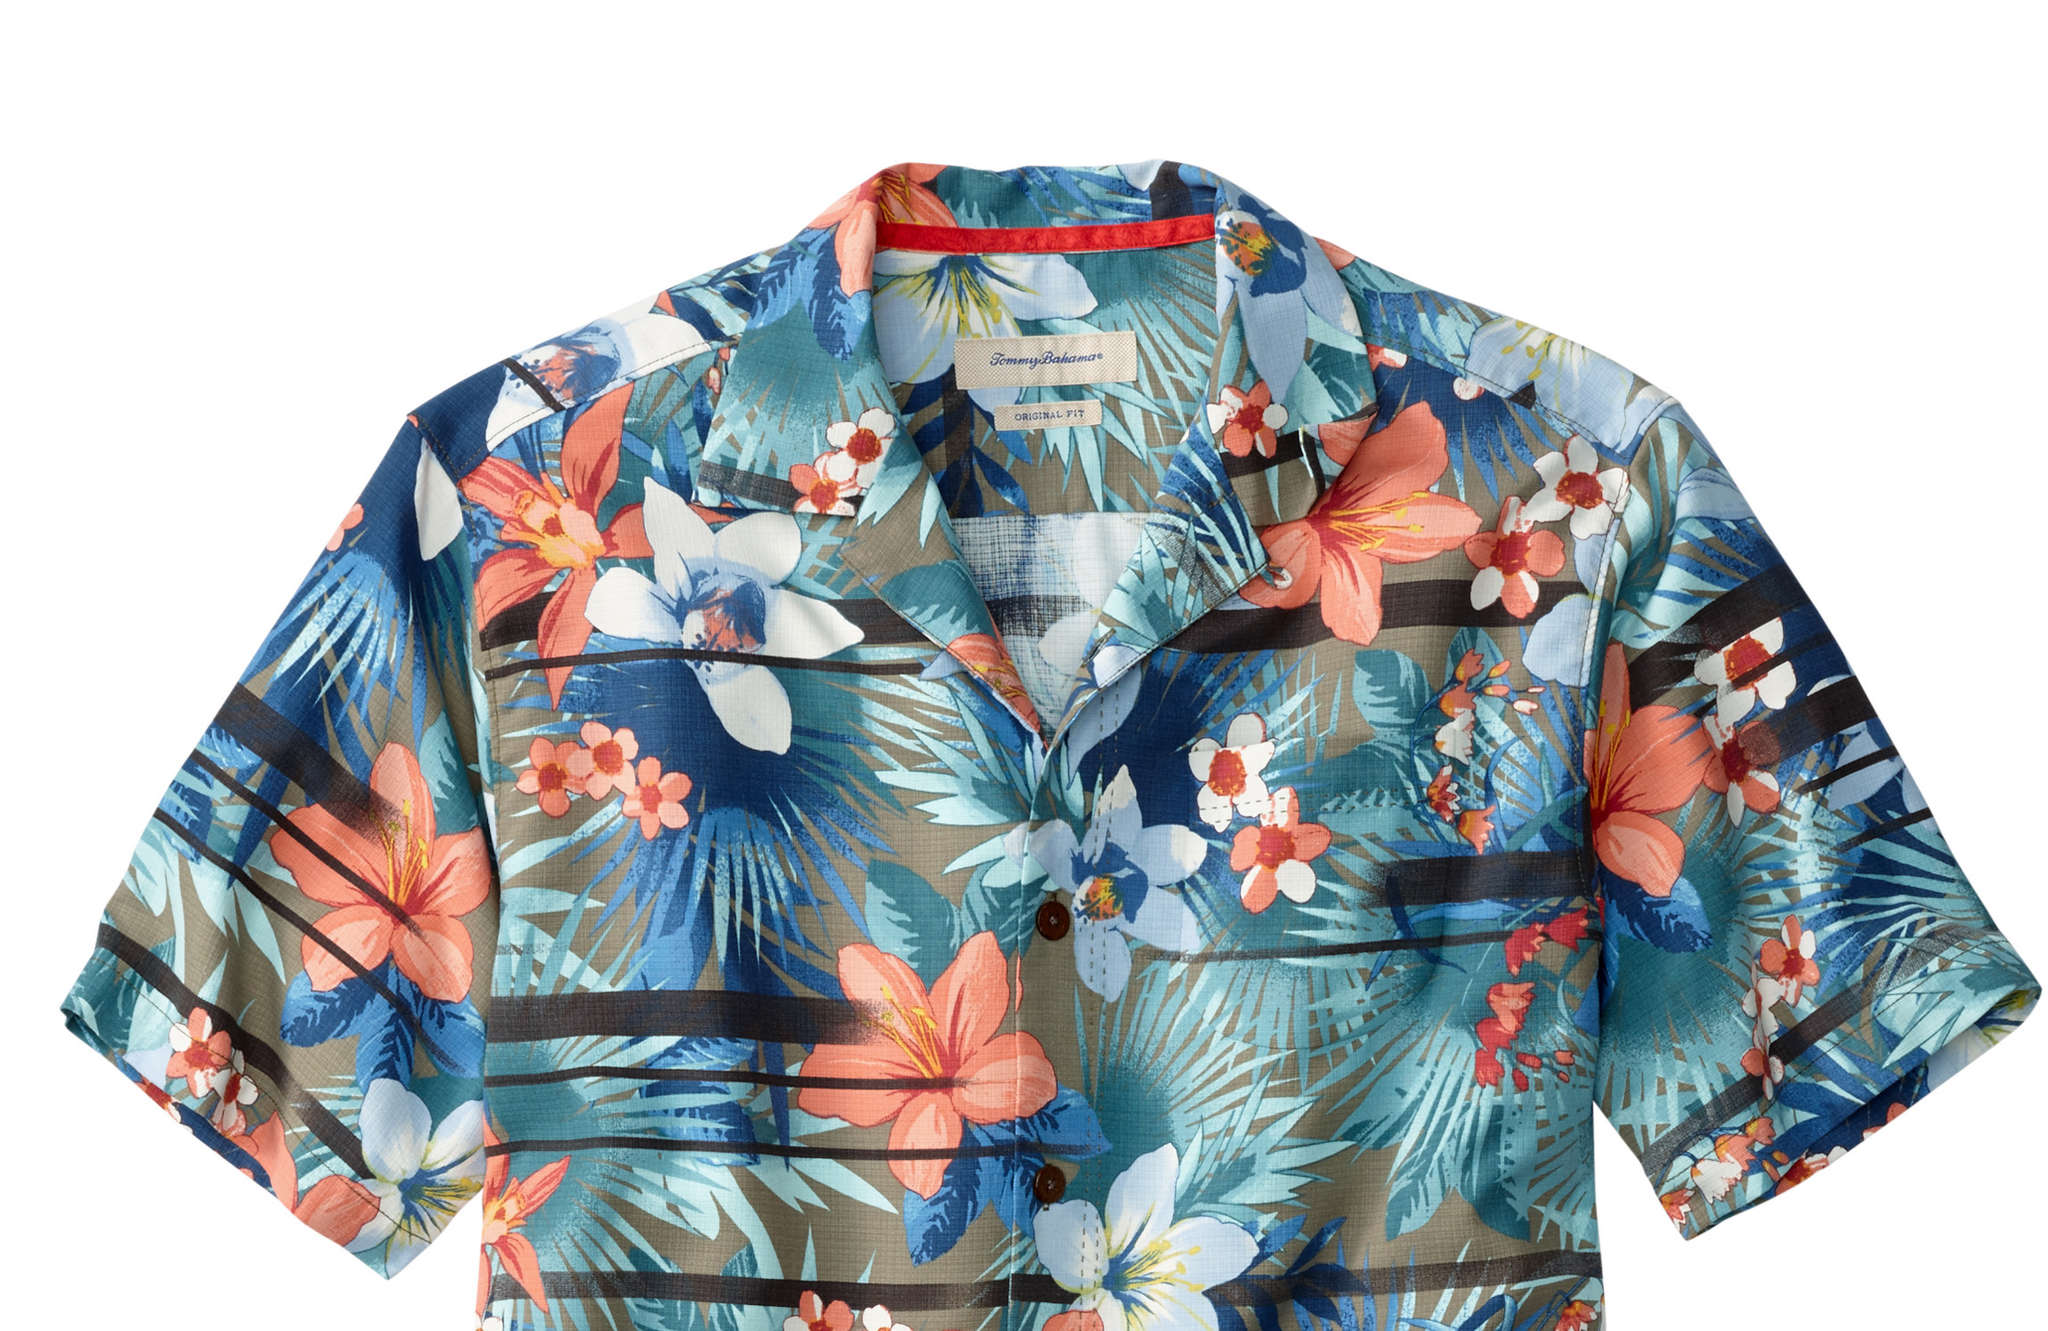 Jungle Horizon Camp Shirt, $128. All courtesy of Tommy Bahama, at the Plaza in King at Prussia.